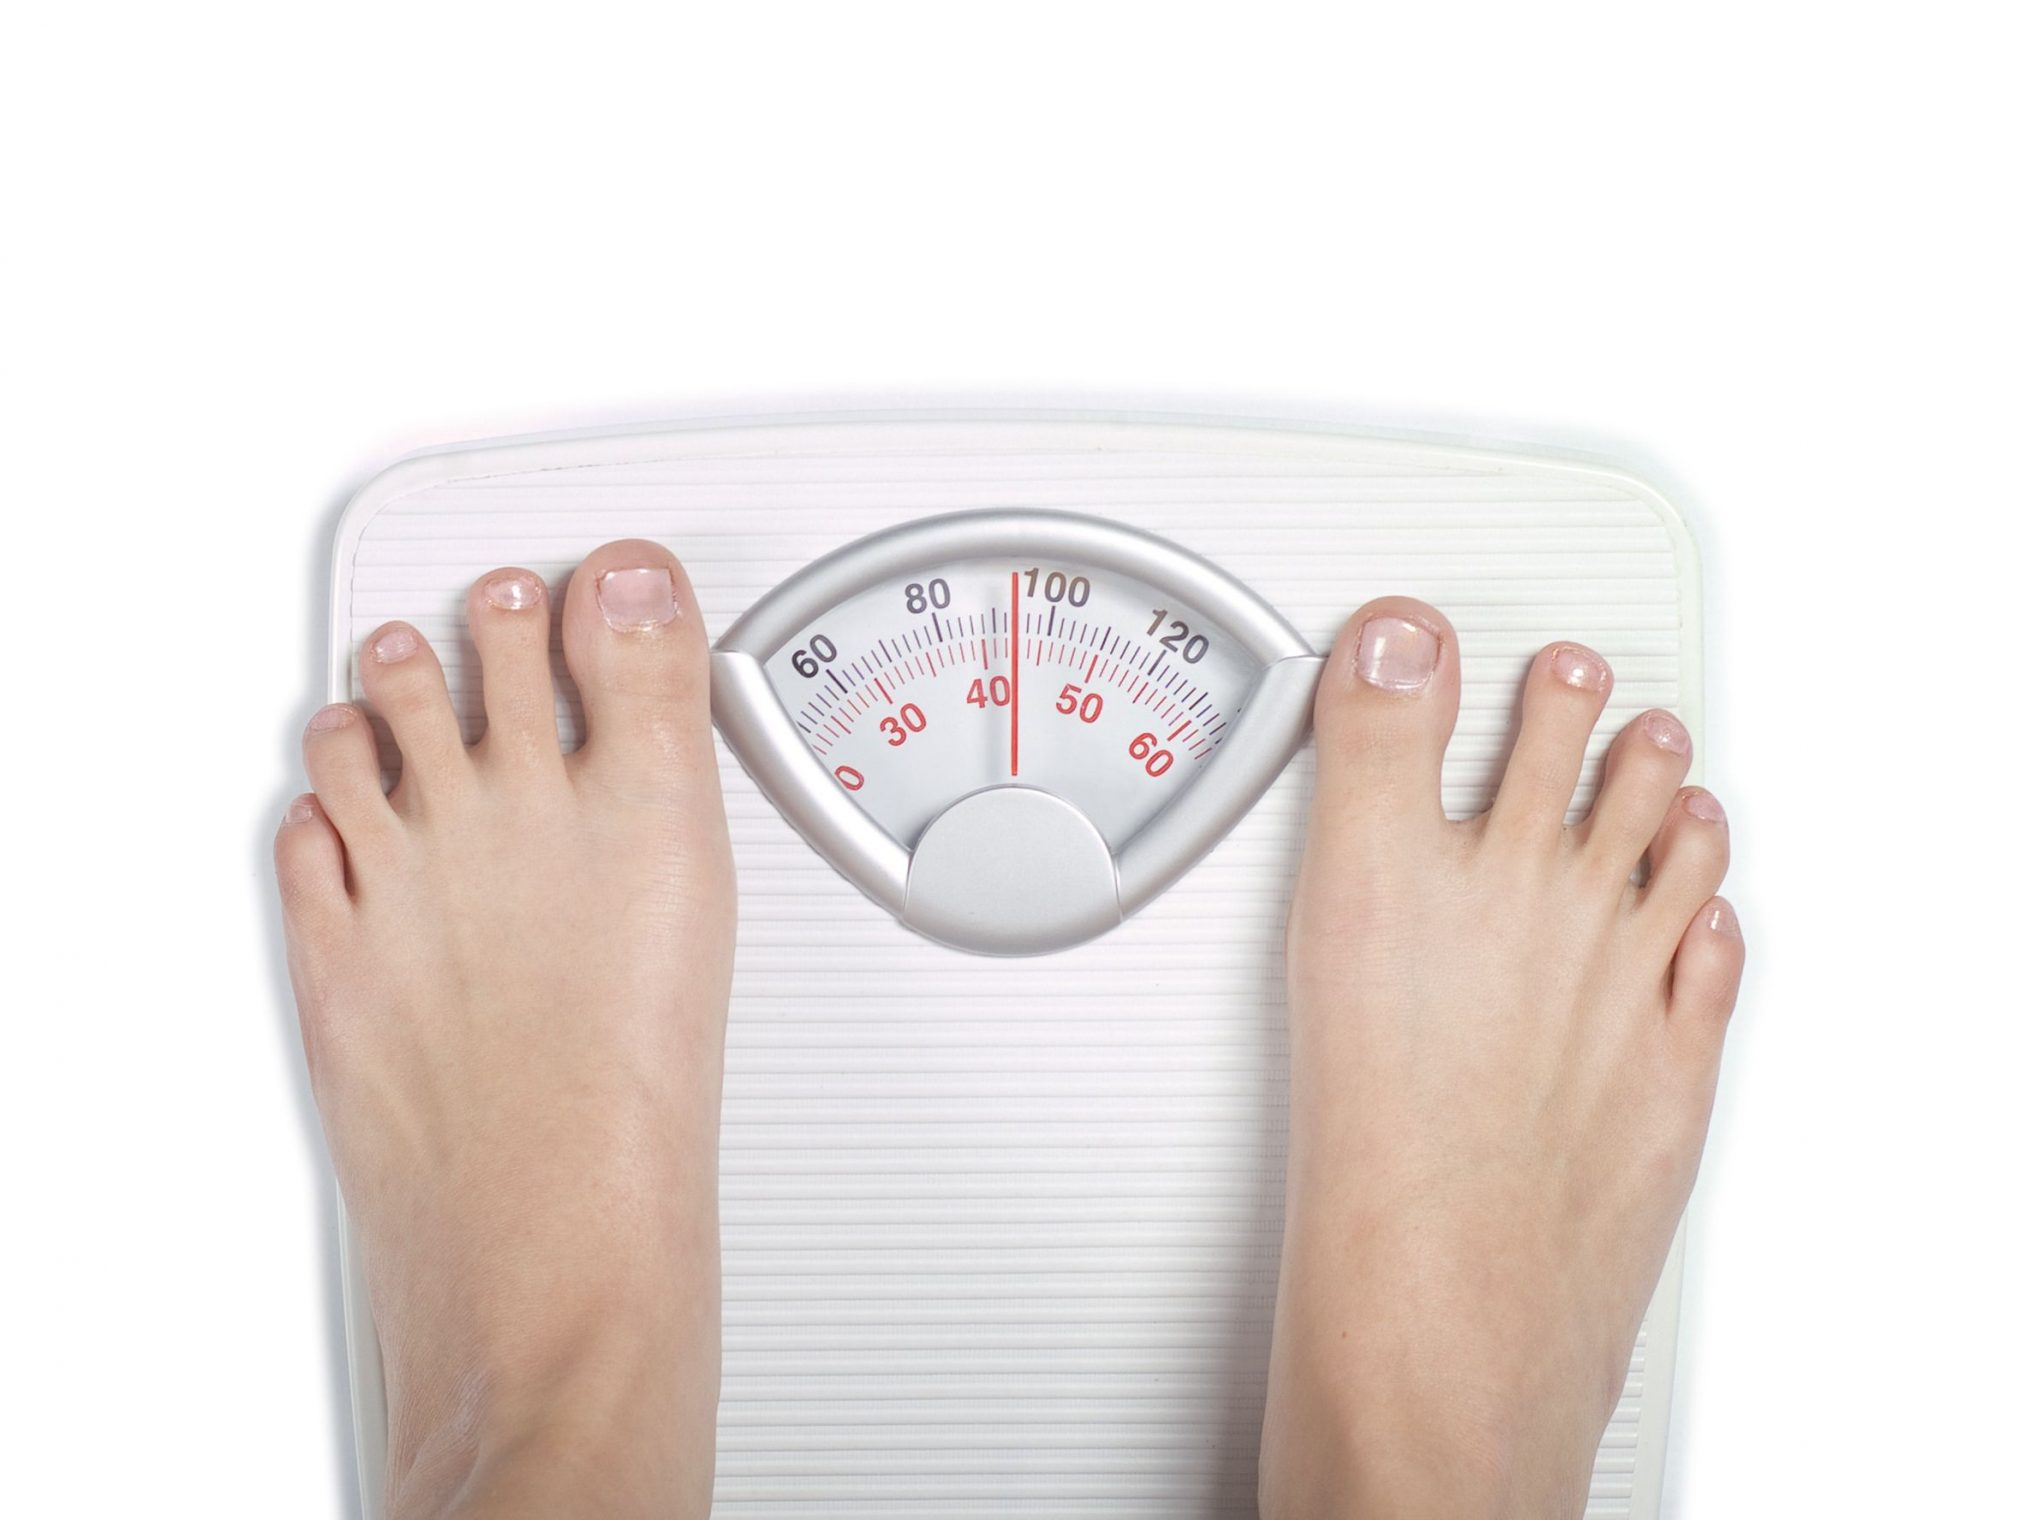 feet on scale weight 90kg